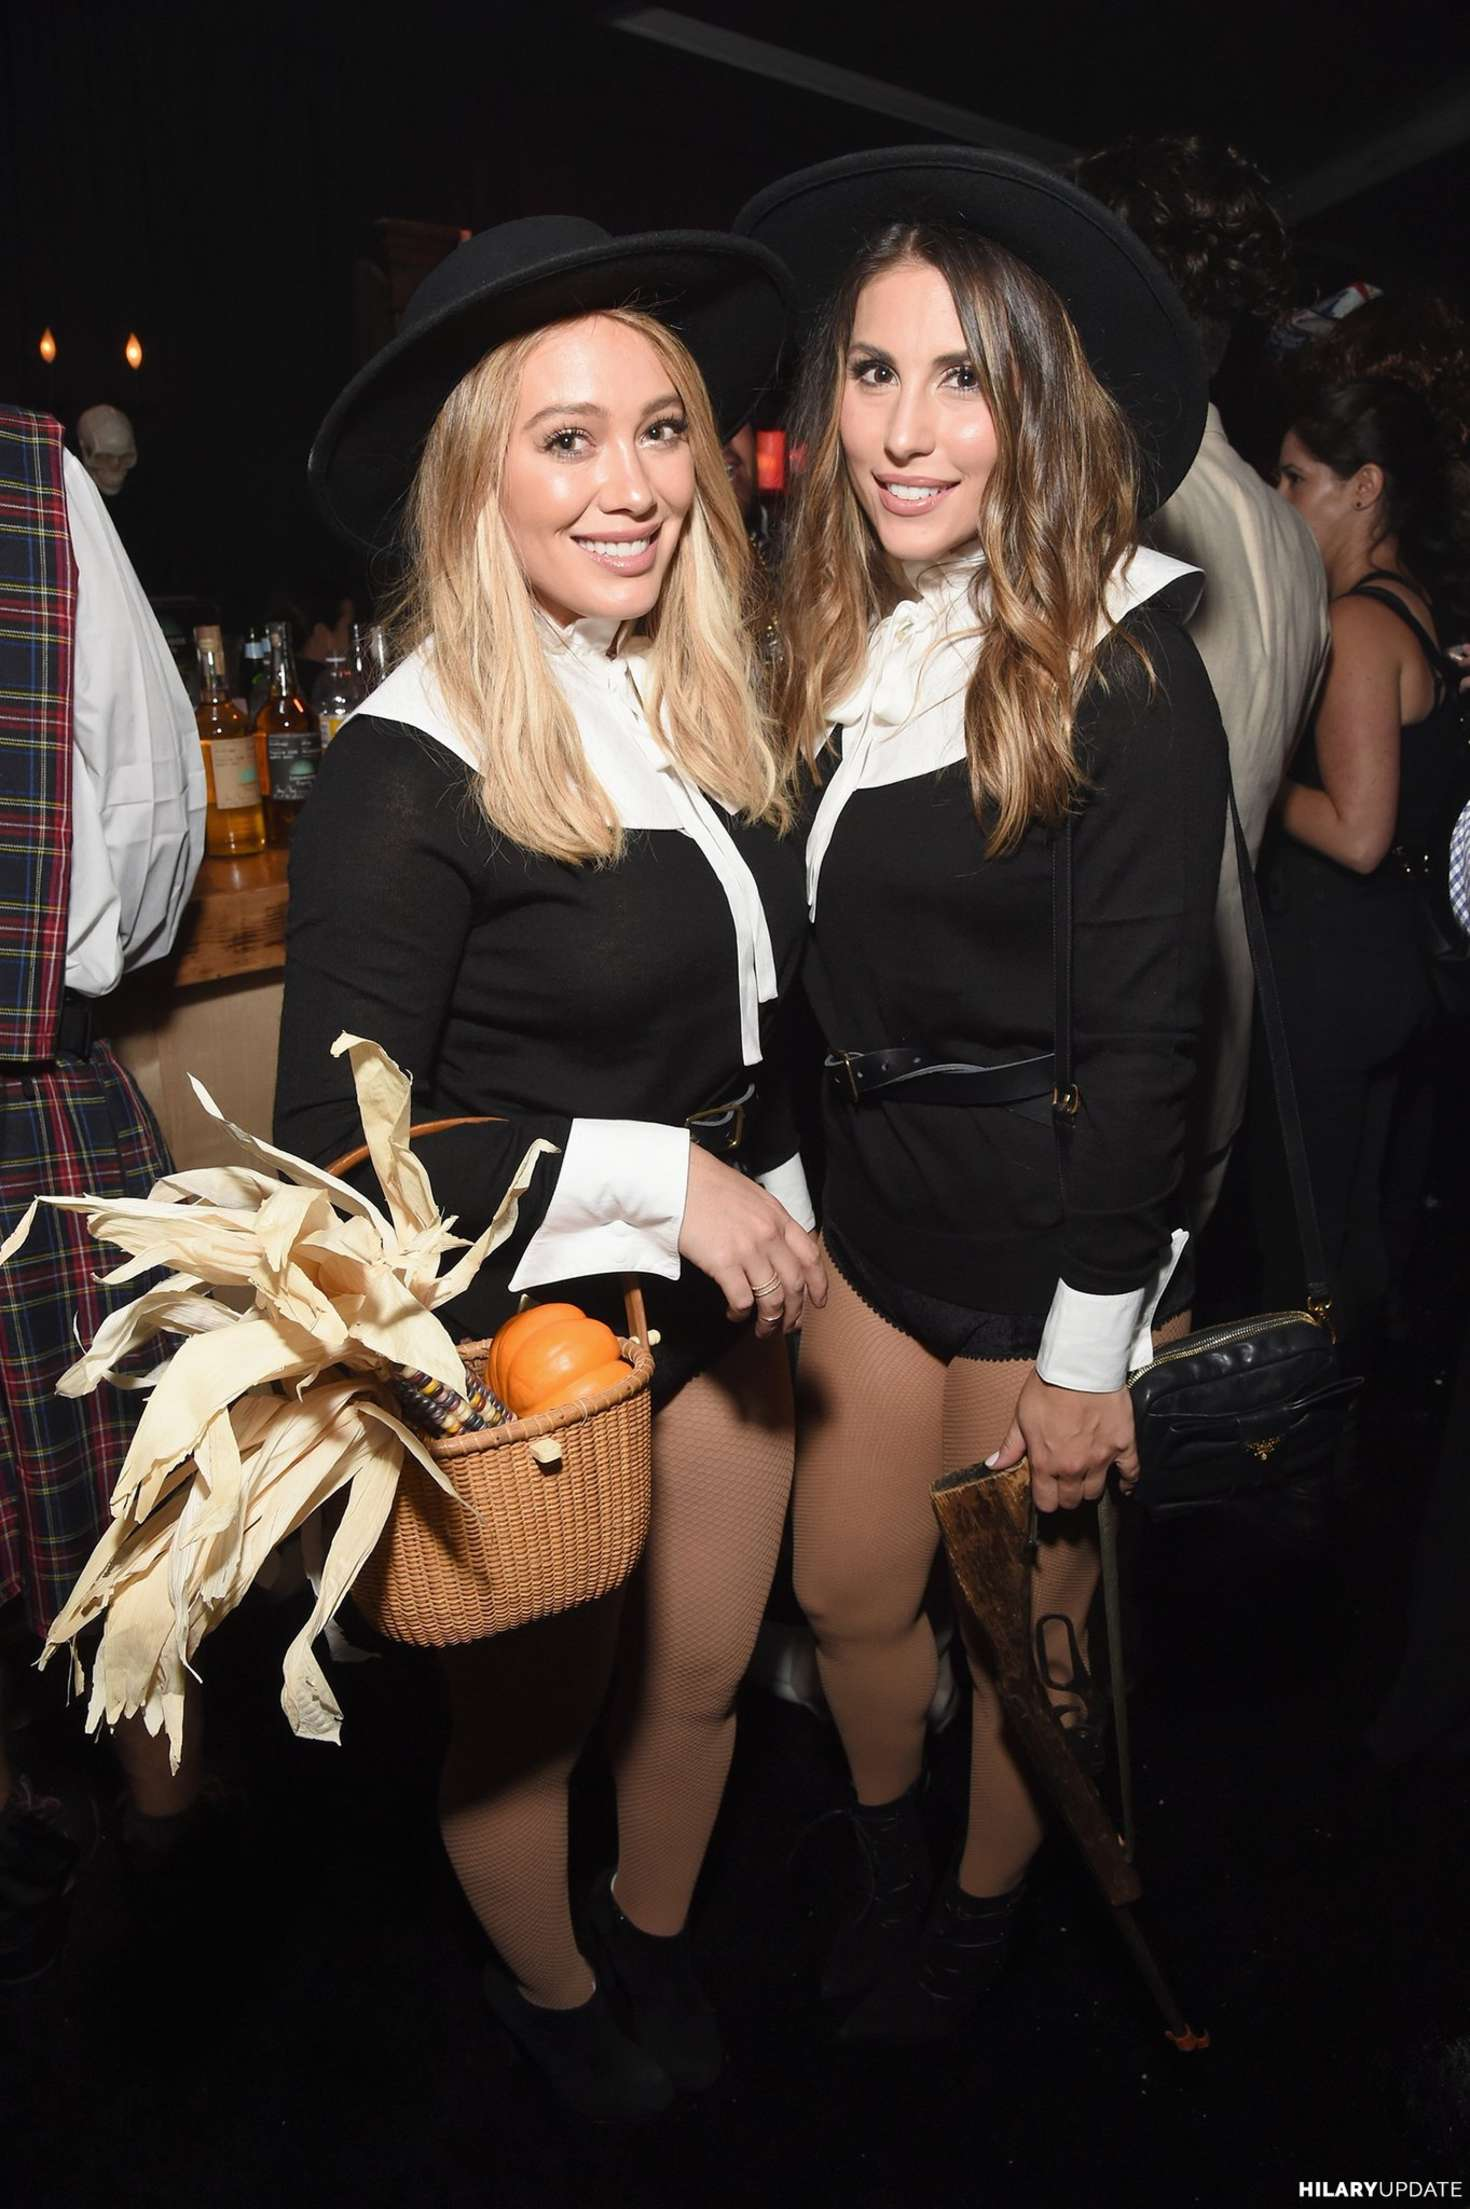 Hilary Duff - 2016 Casamigos Tequila Halloween Party in Beverly Hills